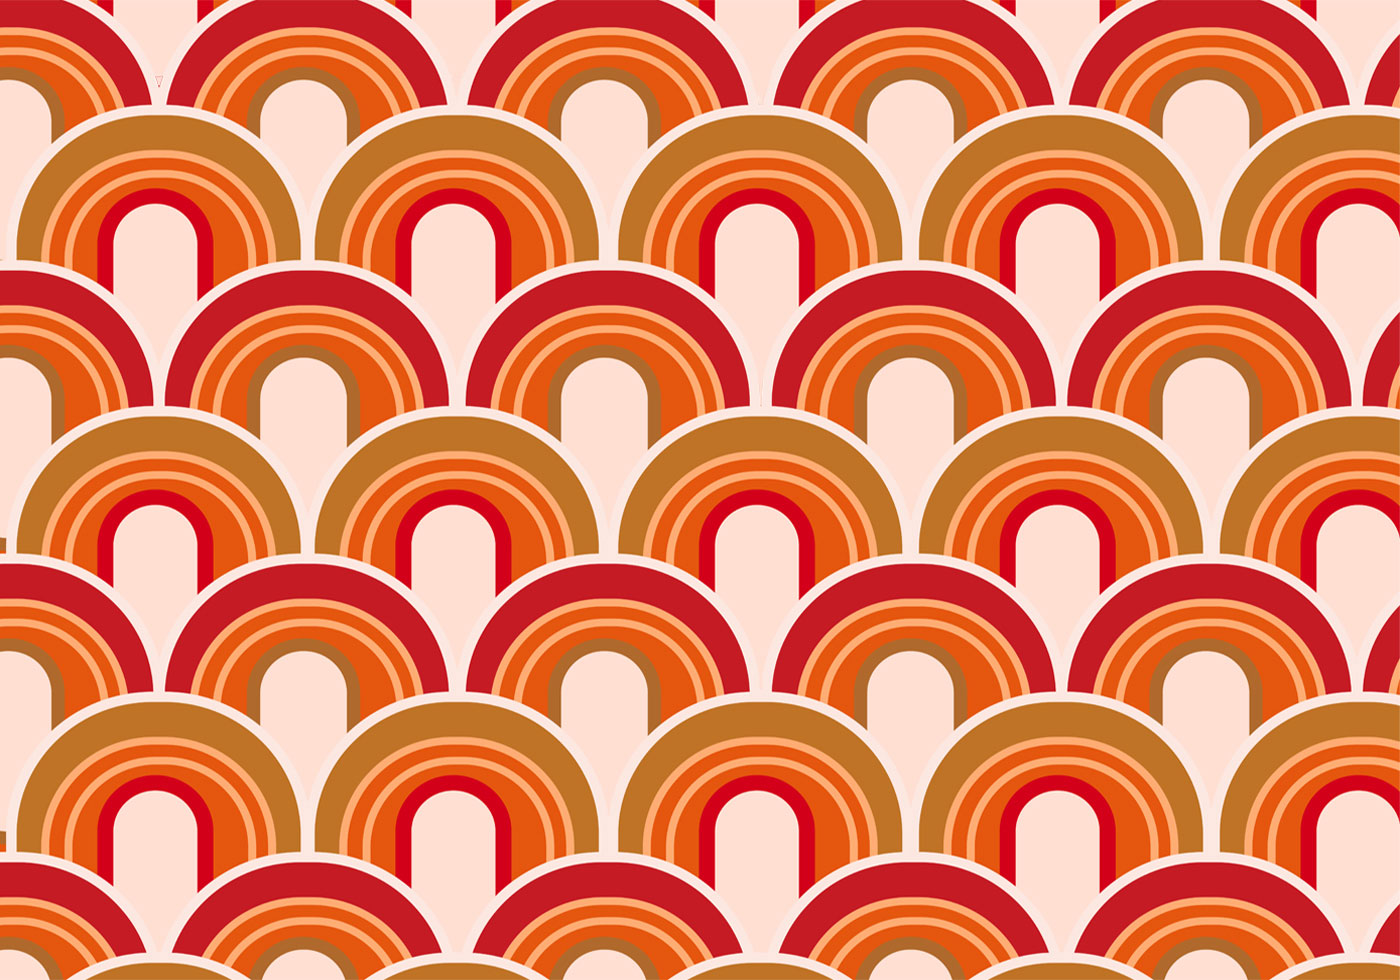 70s Design Patterns